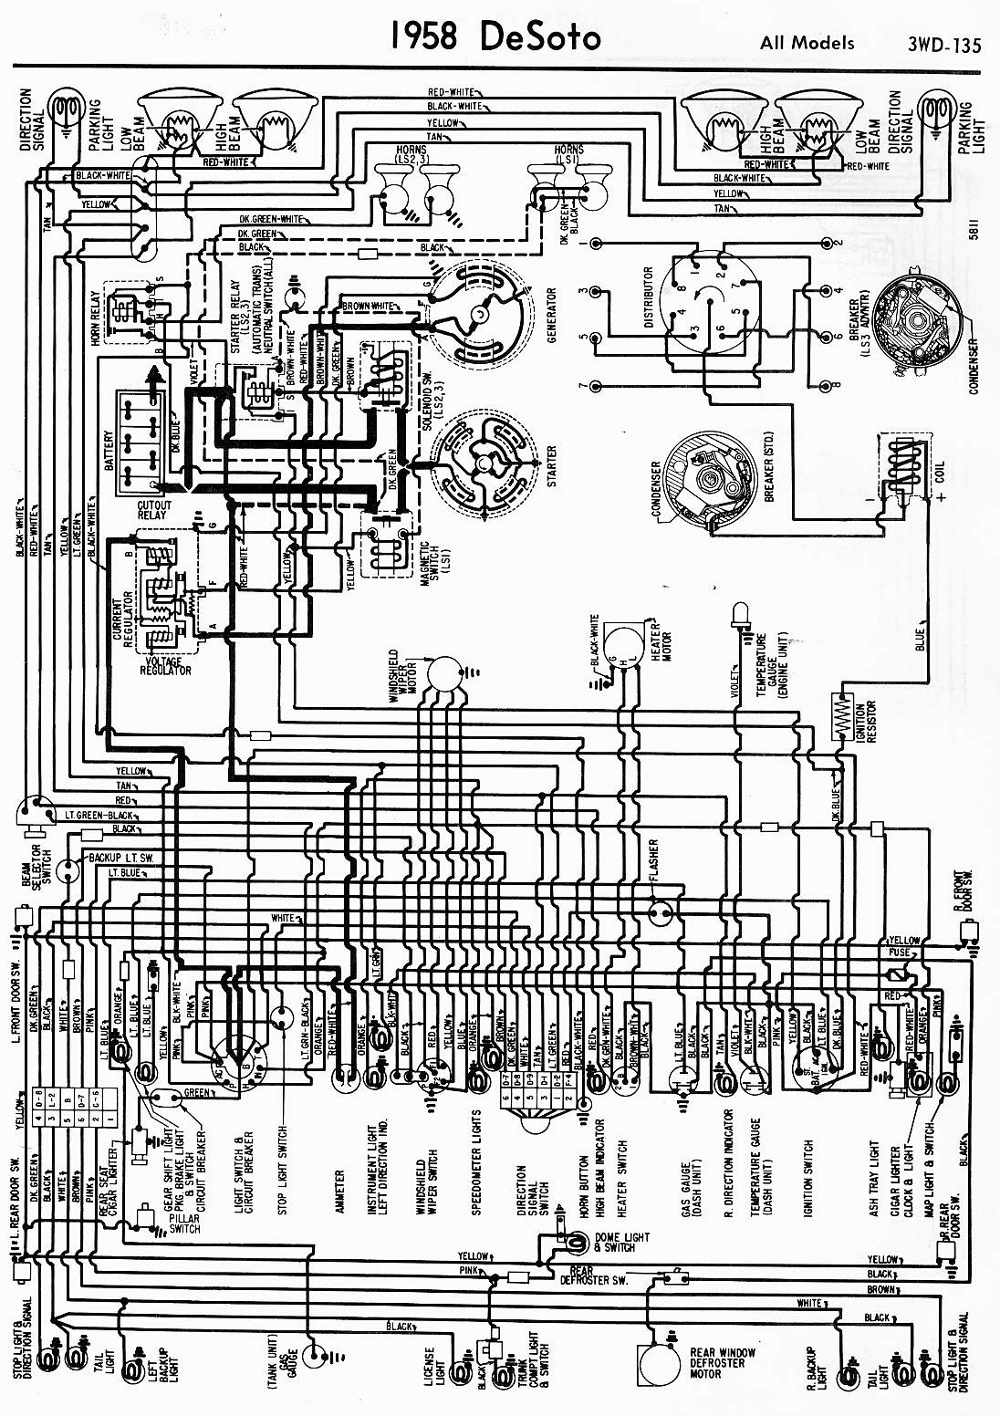 medium resolution of  outstanding ford tractor wiring diagram adornment the wire wiring diagrams of 1958 desoto all models ford